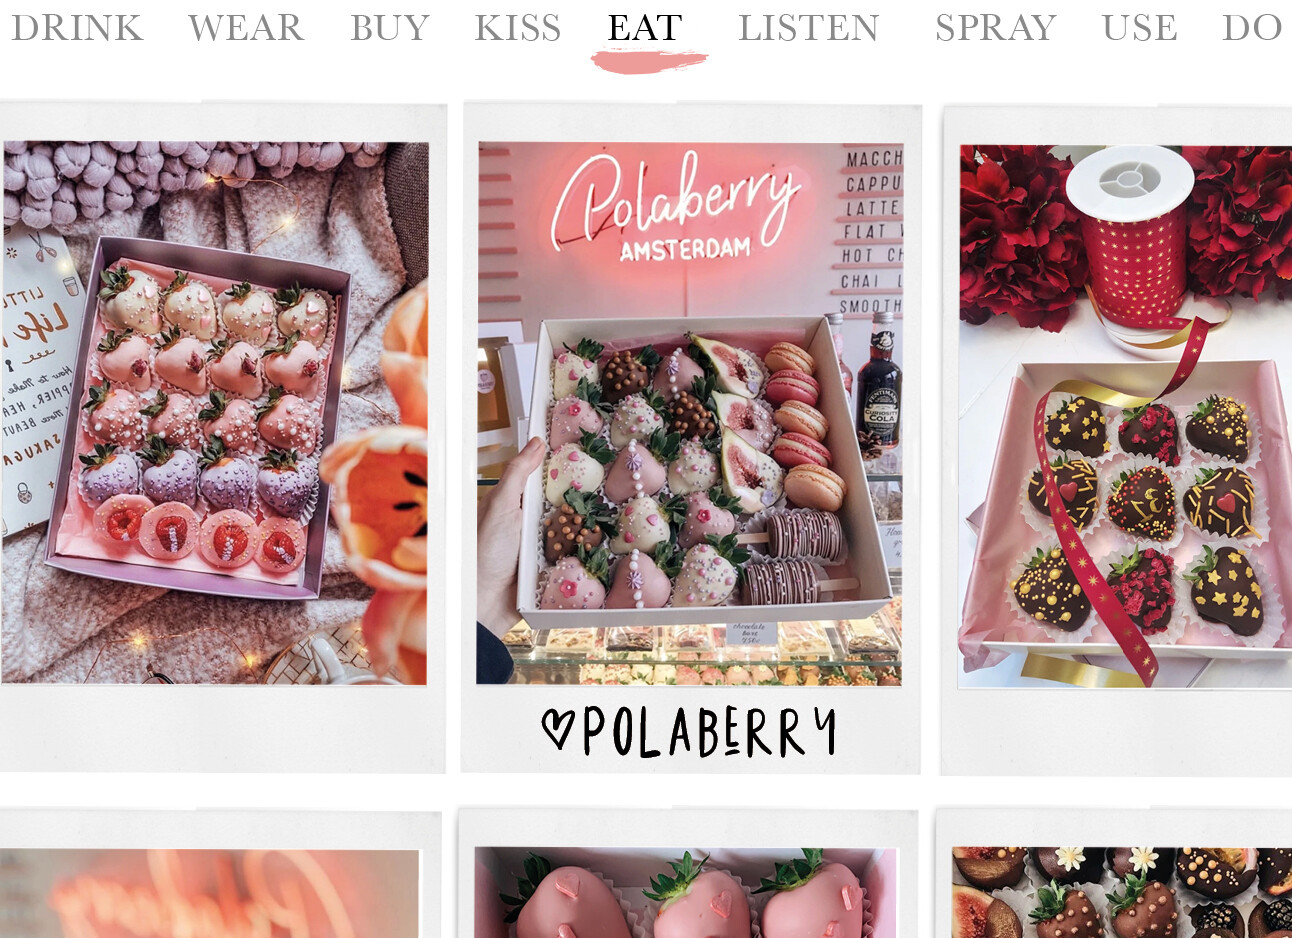 todaywe-Polaberry-Amsterdam-eat-lievelings